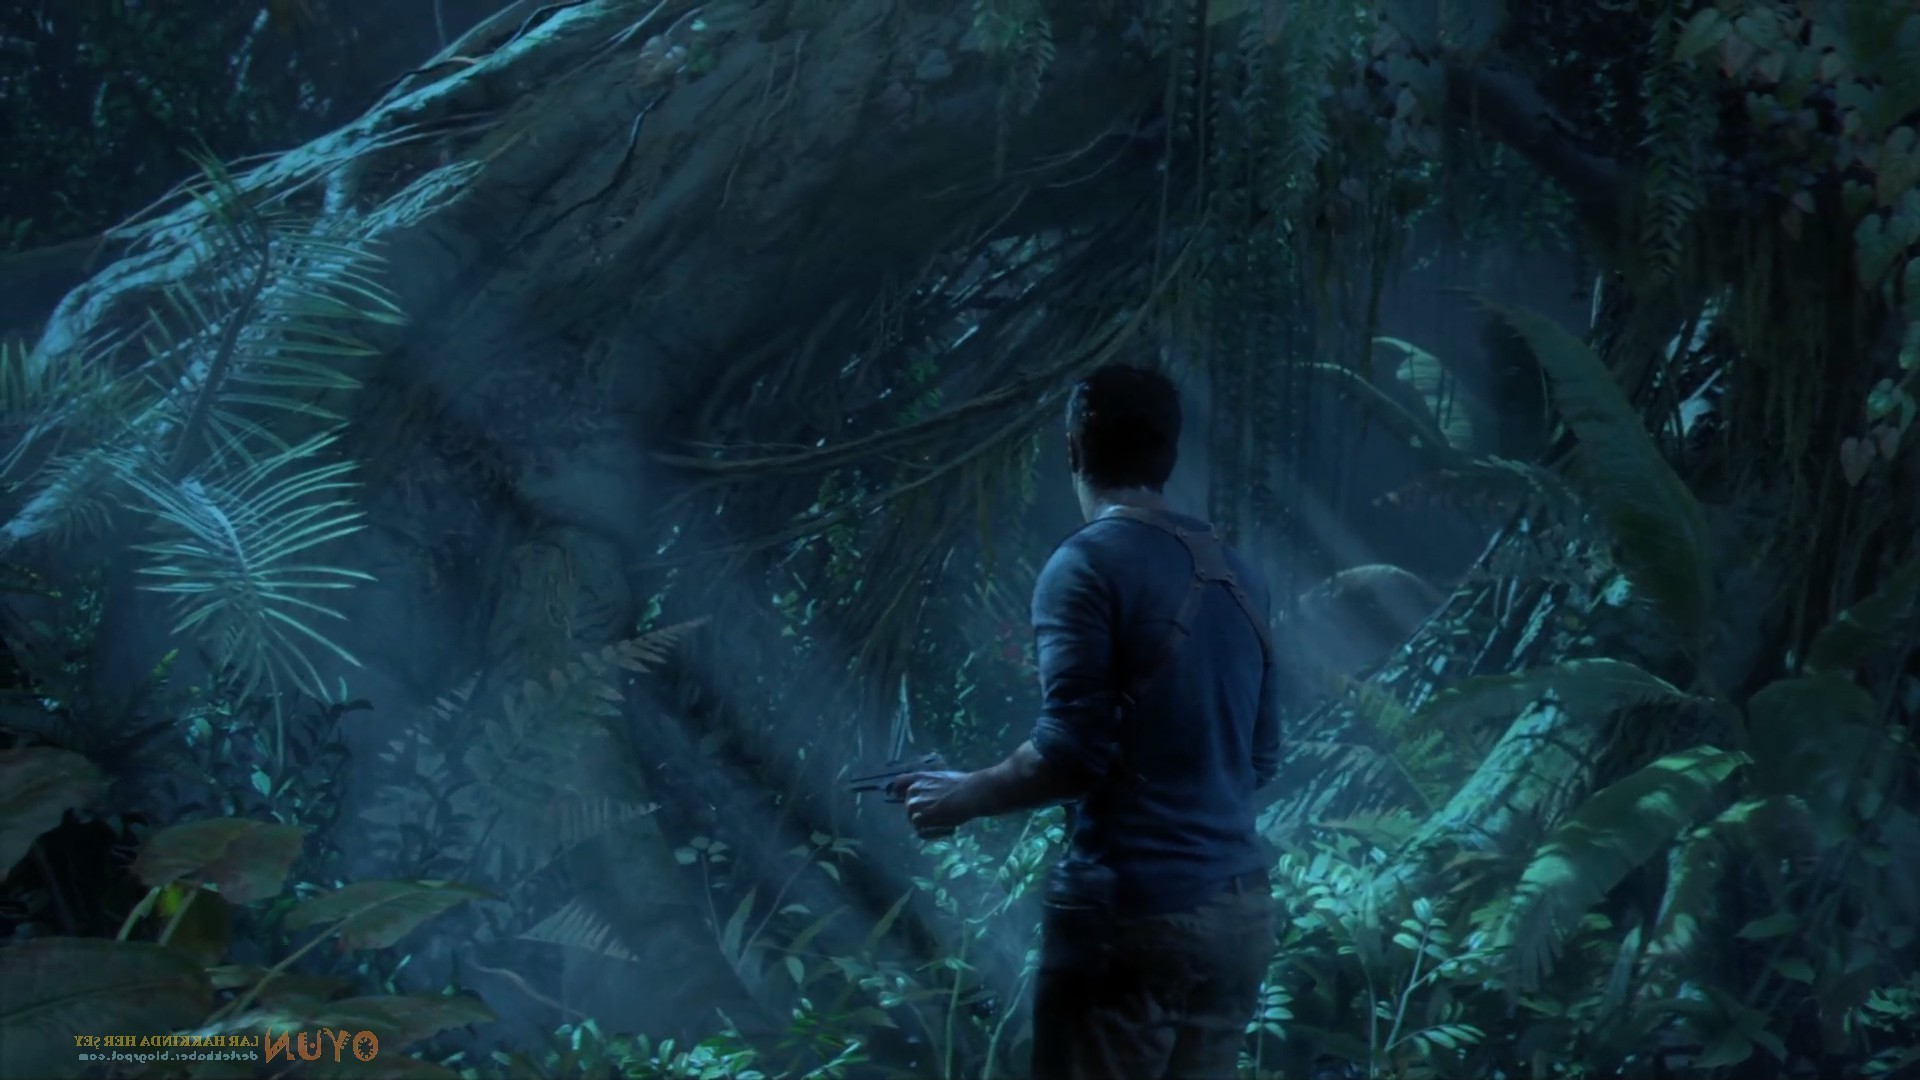 uncharted, Uncharted 4: A Thiefs End, Nathan Drake, Video Games